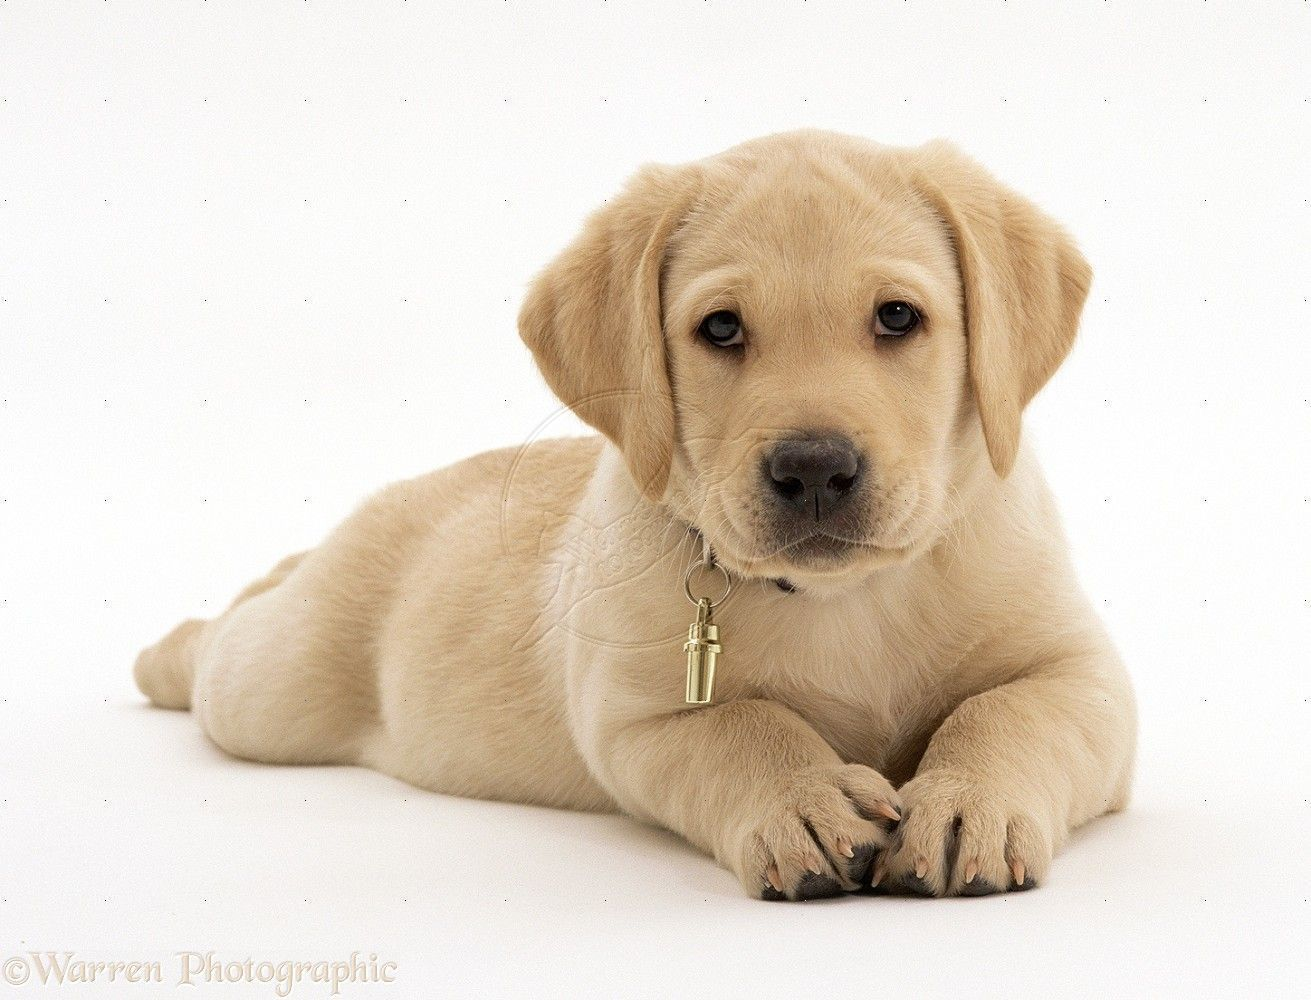 images of puppies WP23935 Yellow Labrador Retriever